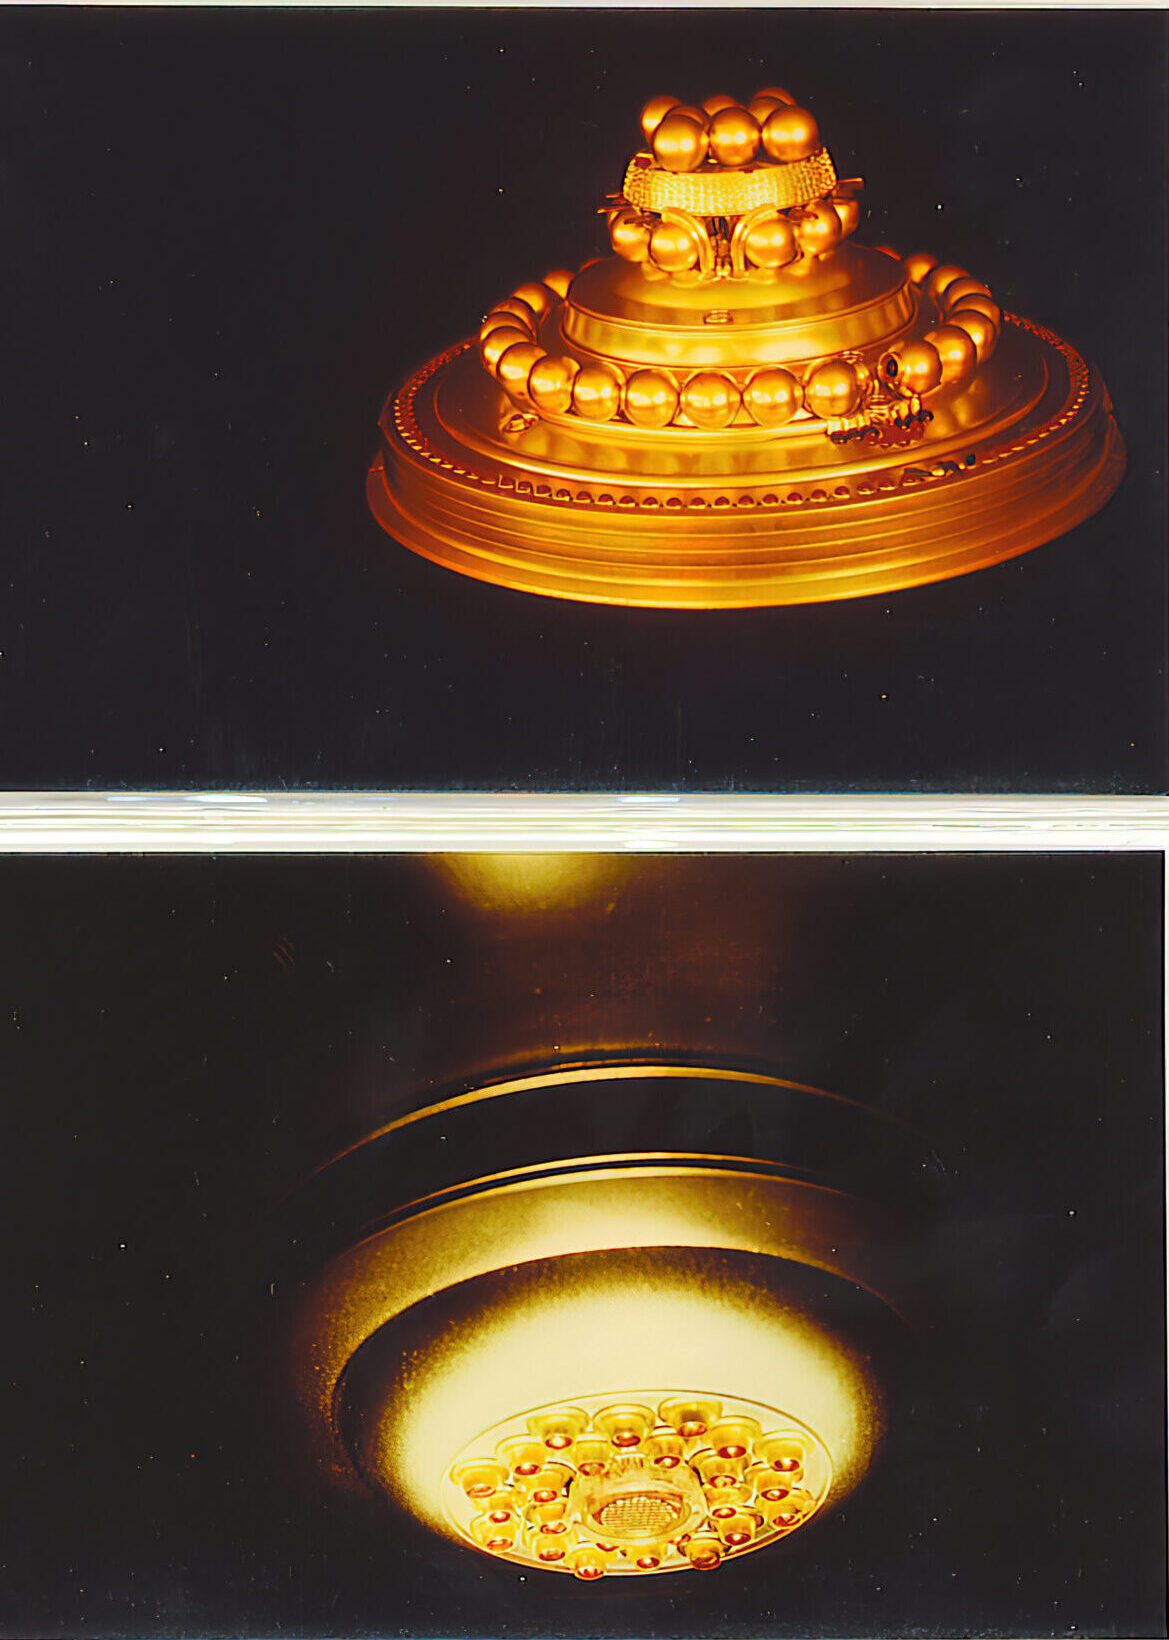 WCUFO - Gold Appearance and bottom of ship